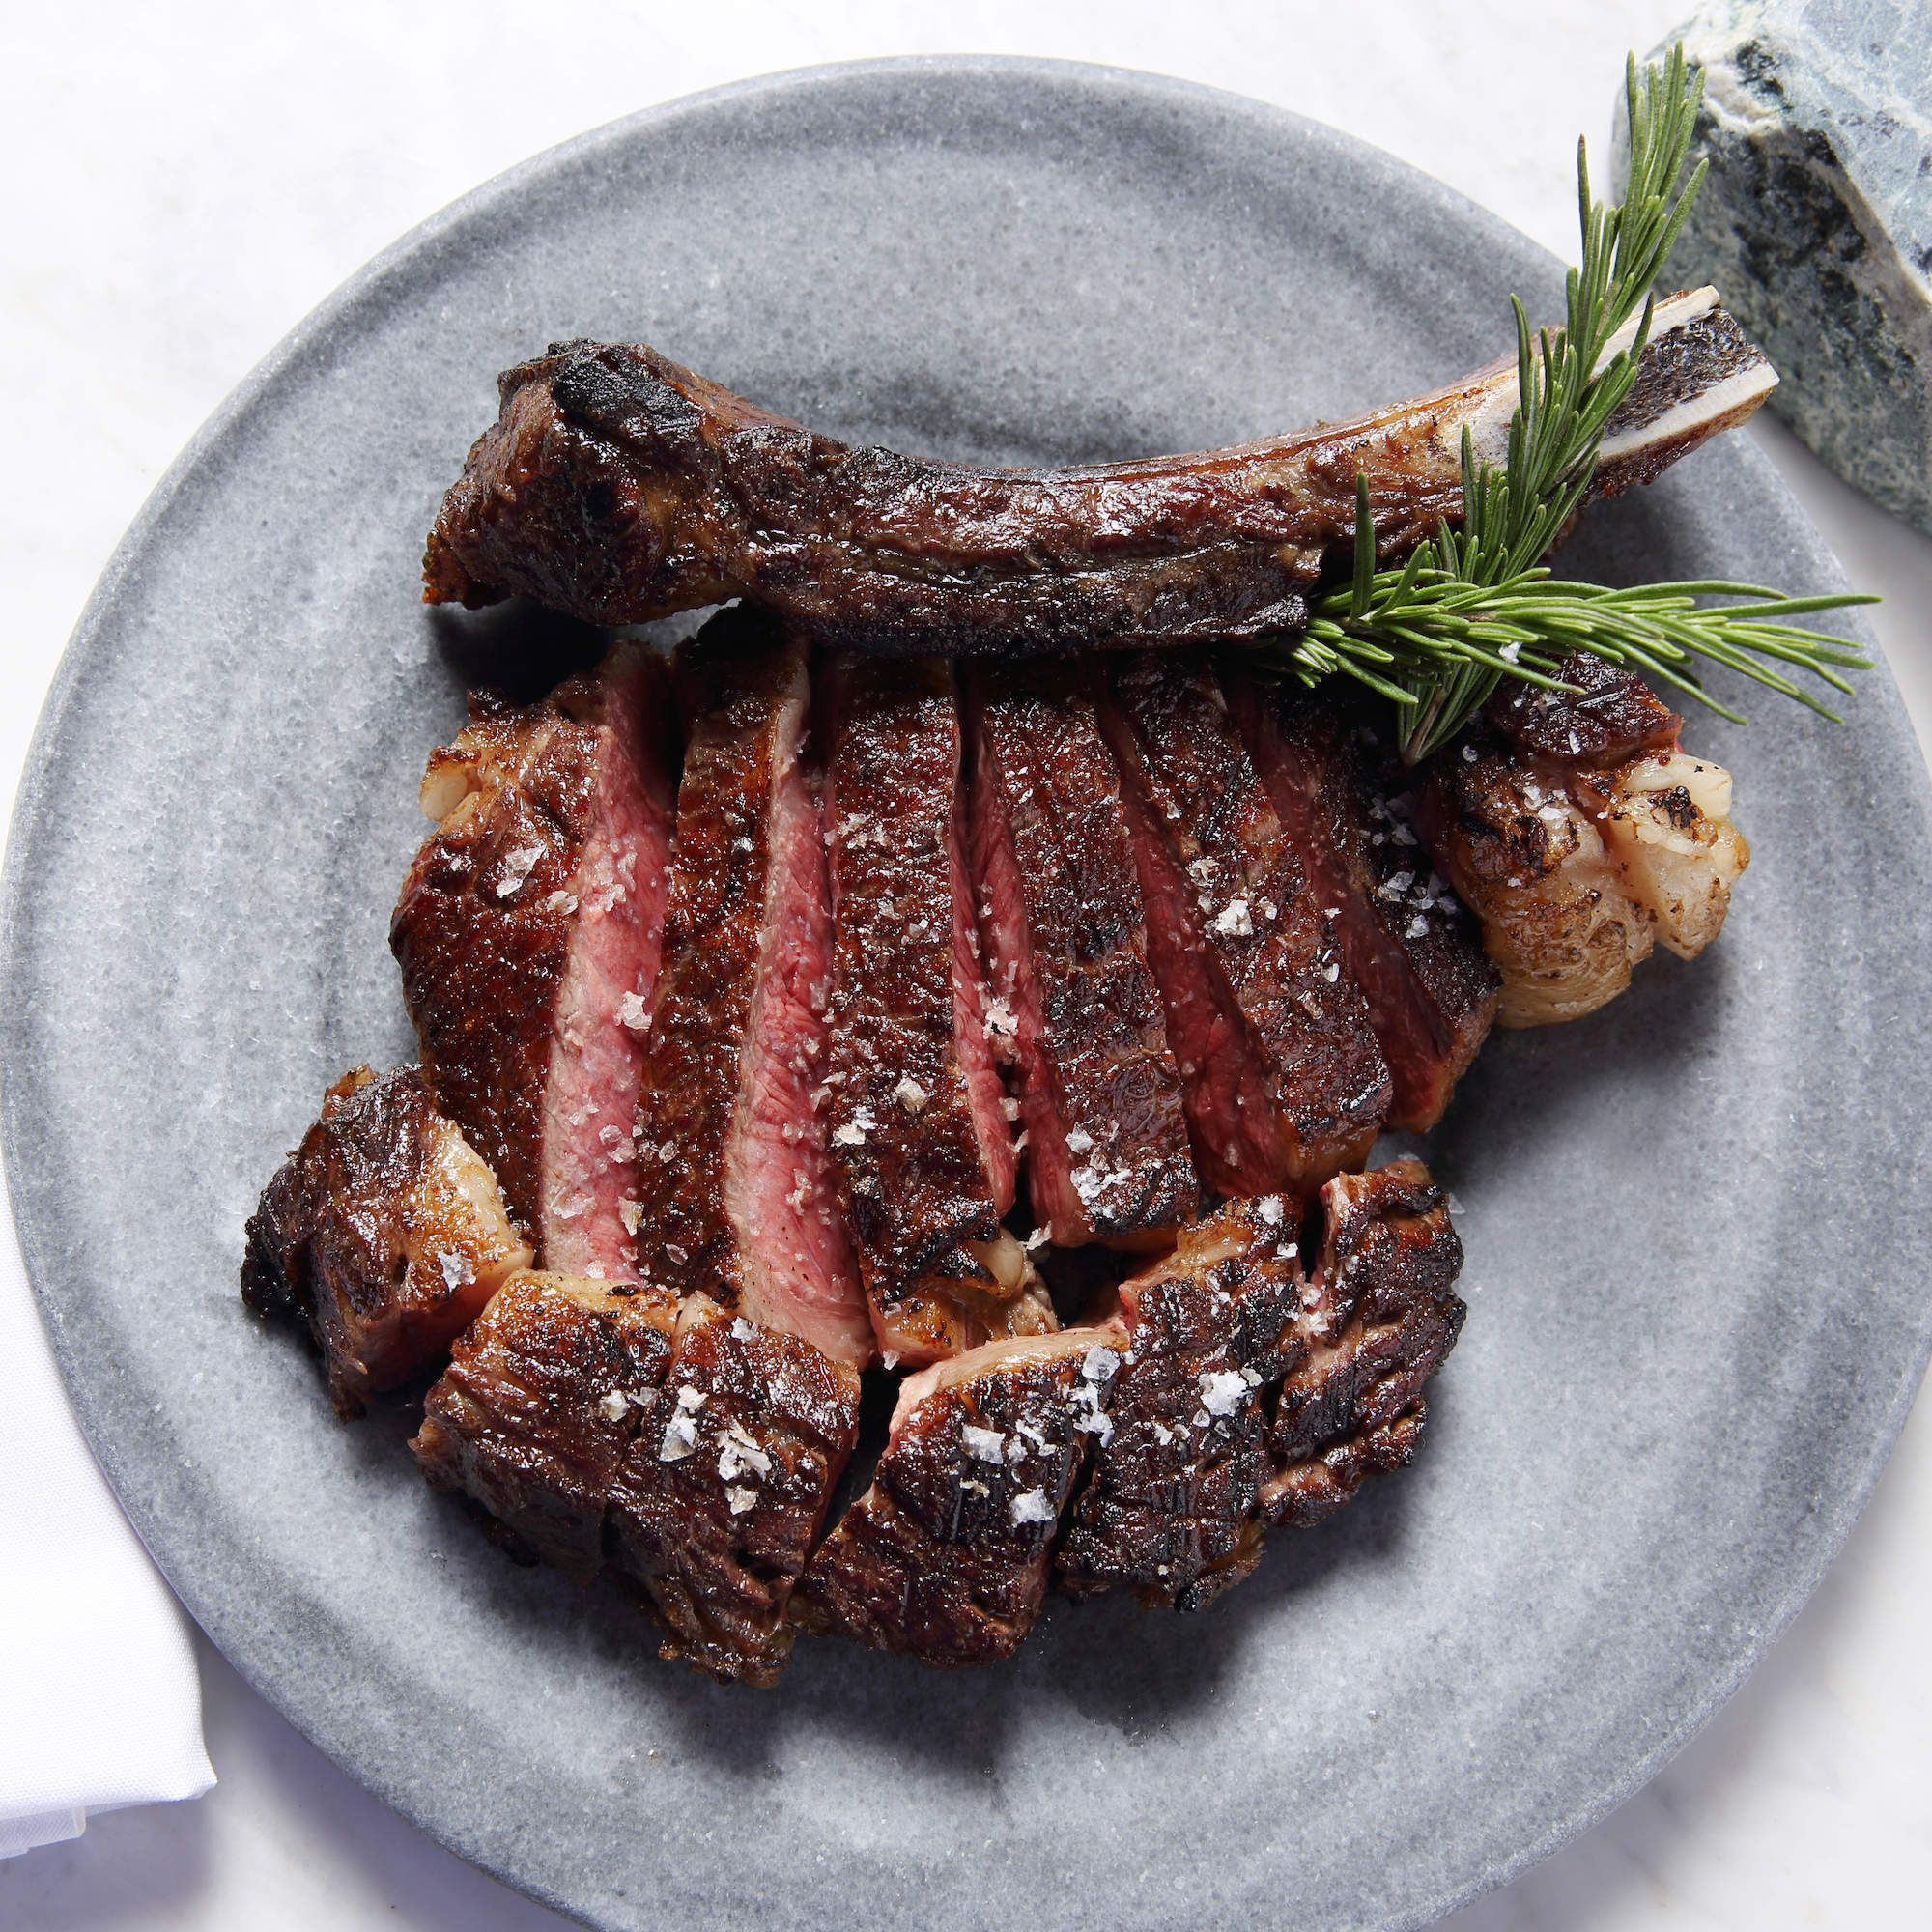 You Didn T Know Needed A Complete Guide To 40 Of The Best Steakhouses In Las Vegas But It S Always Travel Prepared